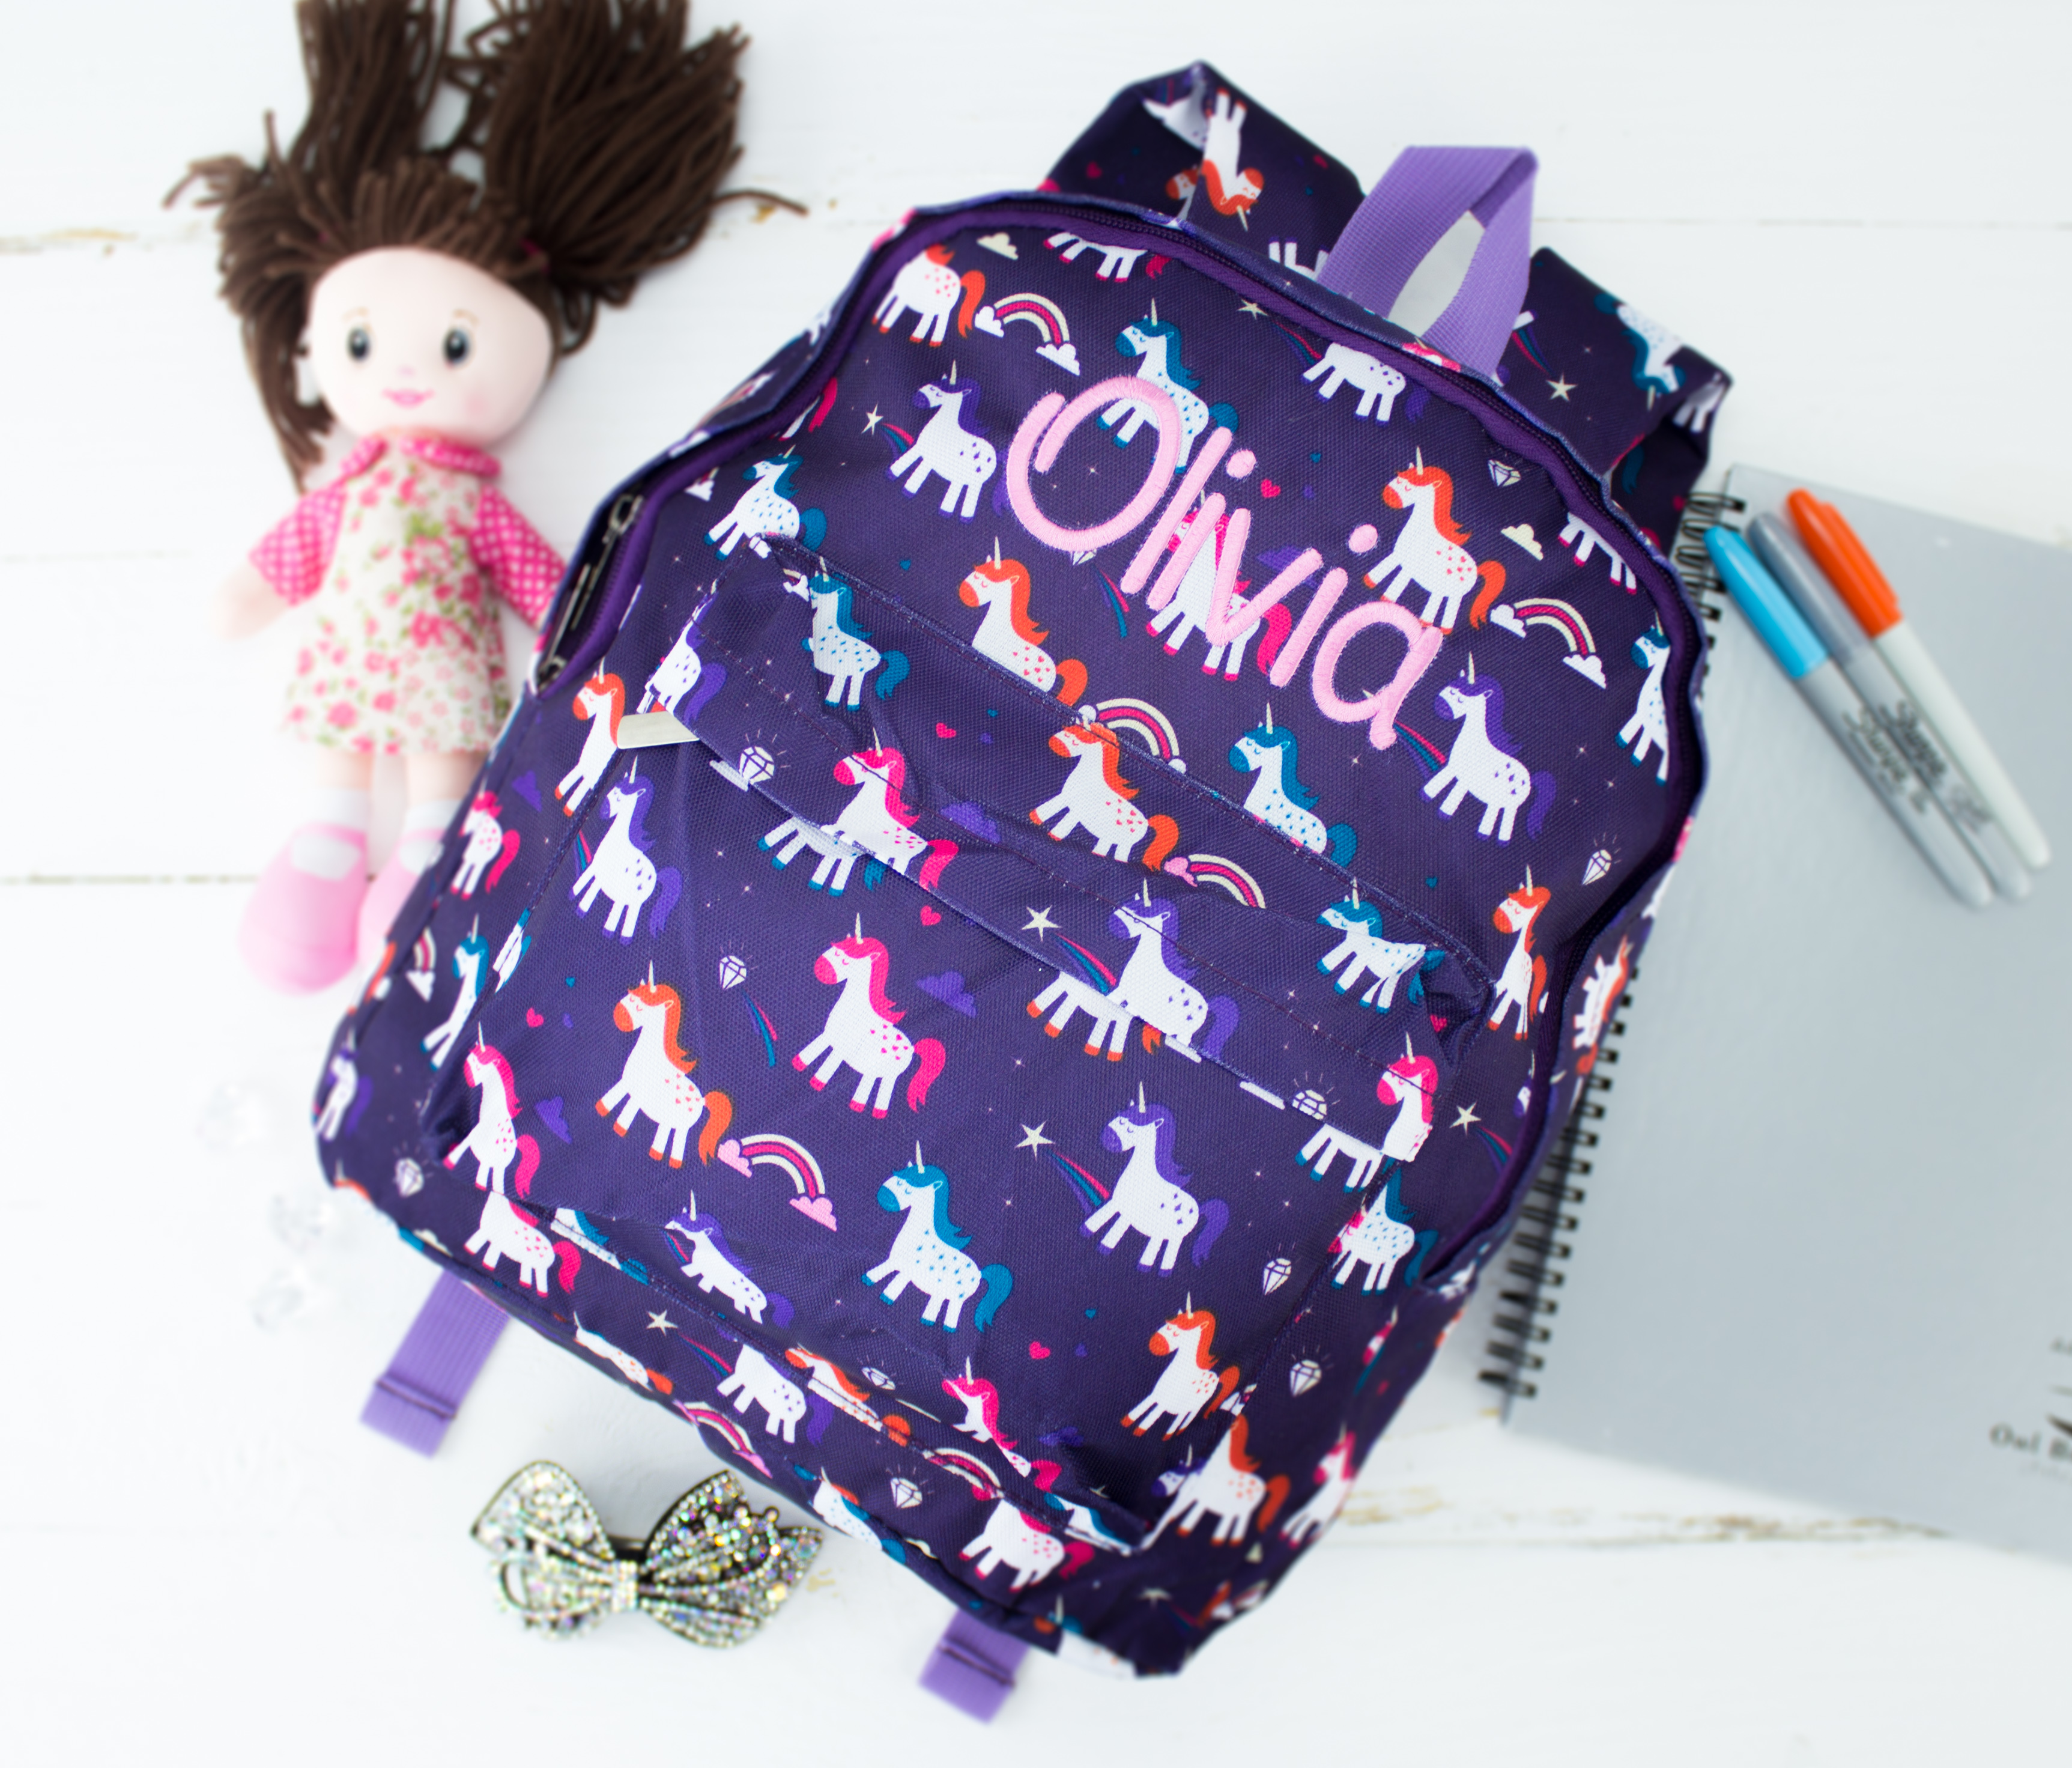 Personalised Large Kids Backpack - Unicorns   Heavensent Baby Gifts 4be606f96c